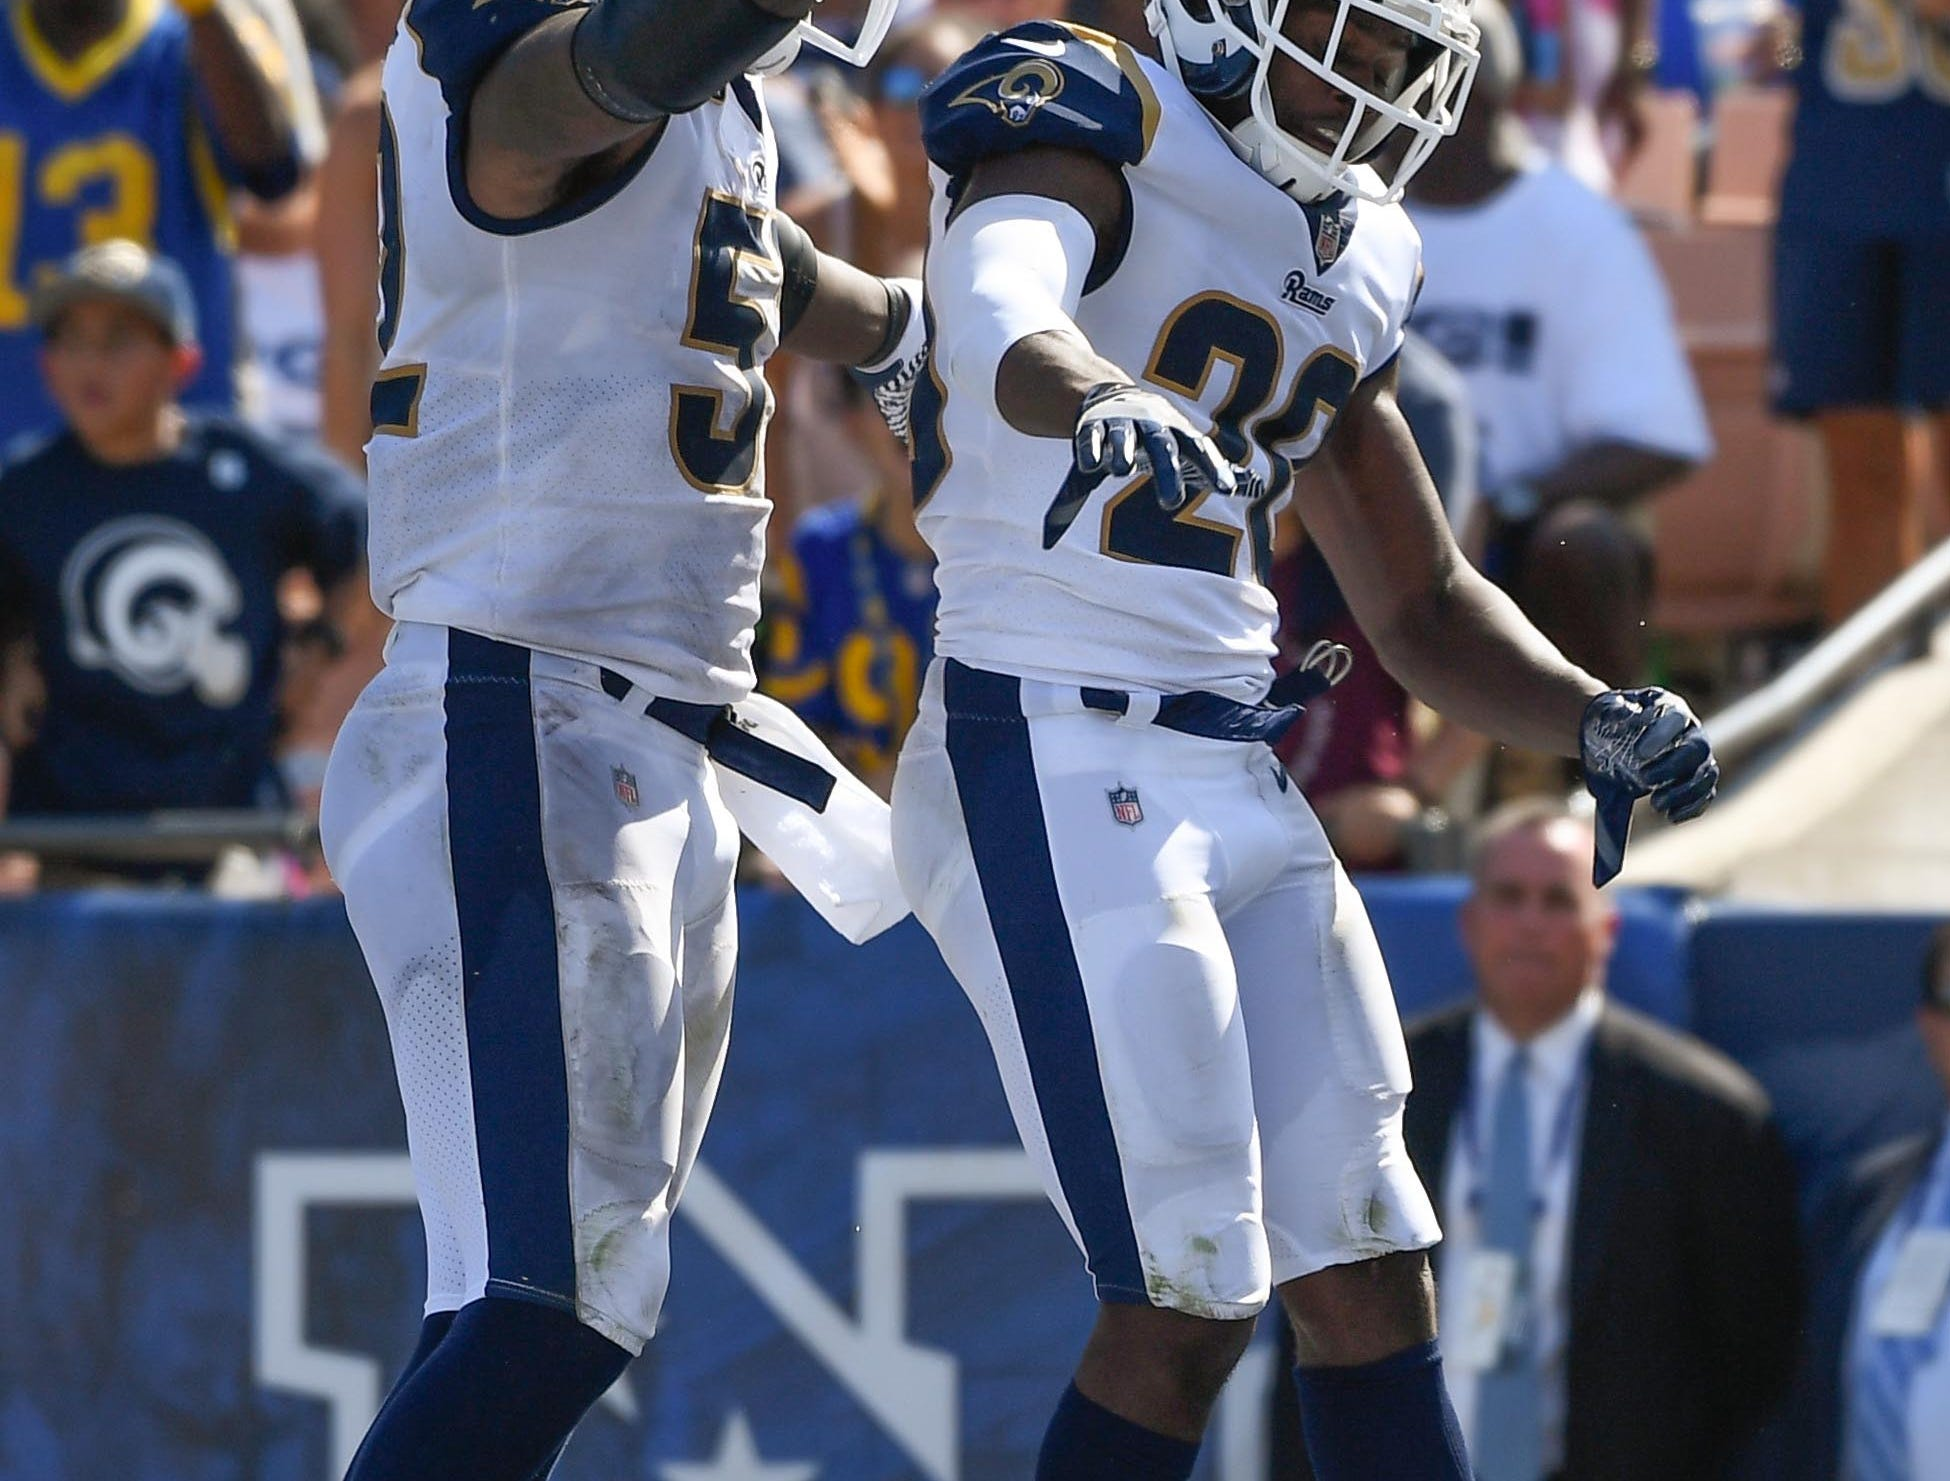 Sep 10, 2017; Los Angeles, CA, USA; Los Angeles Rams cornerback Lamarcus Joyner (20) celebrates running an interception back for a touchdown with teammate middle linebacker Alec Ogletree (52) during the third quarter at Los Angeles Memorial Coliseum. Mandatory Credit: Robert Hanashiro-USA TODAY Sports